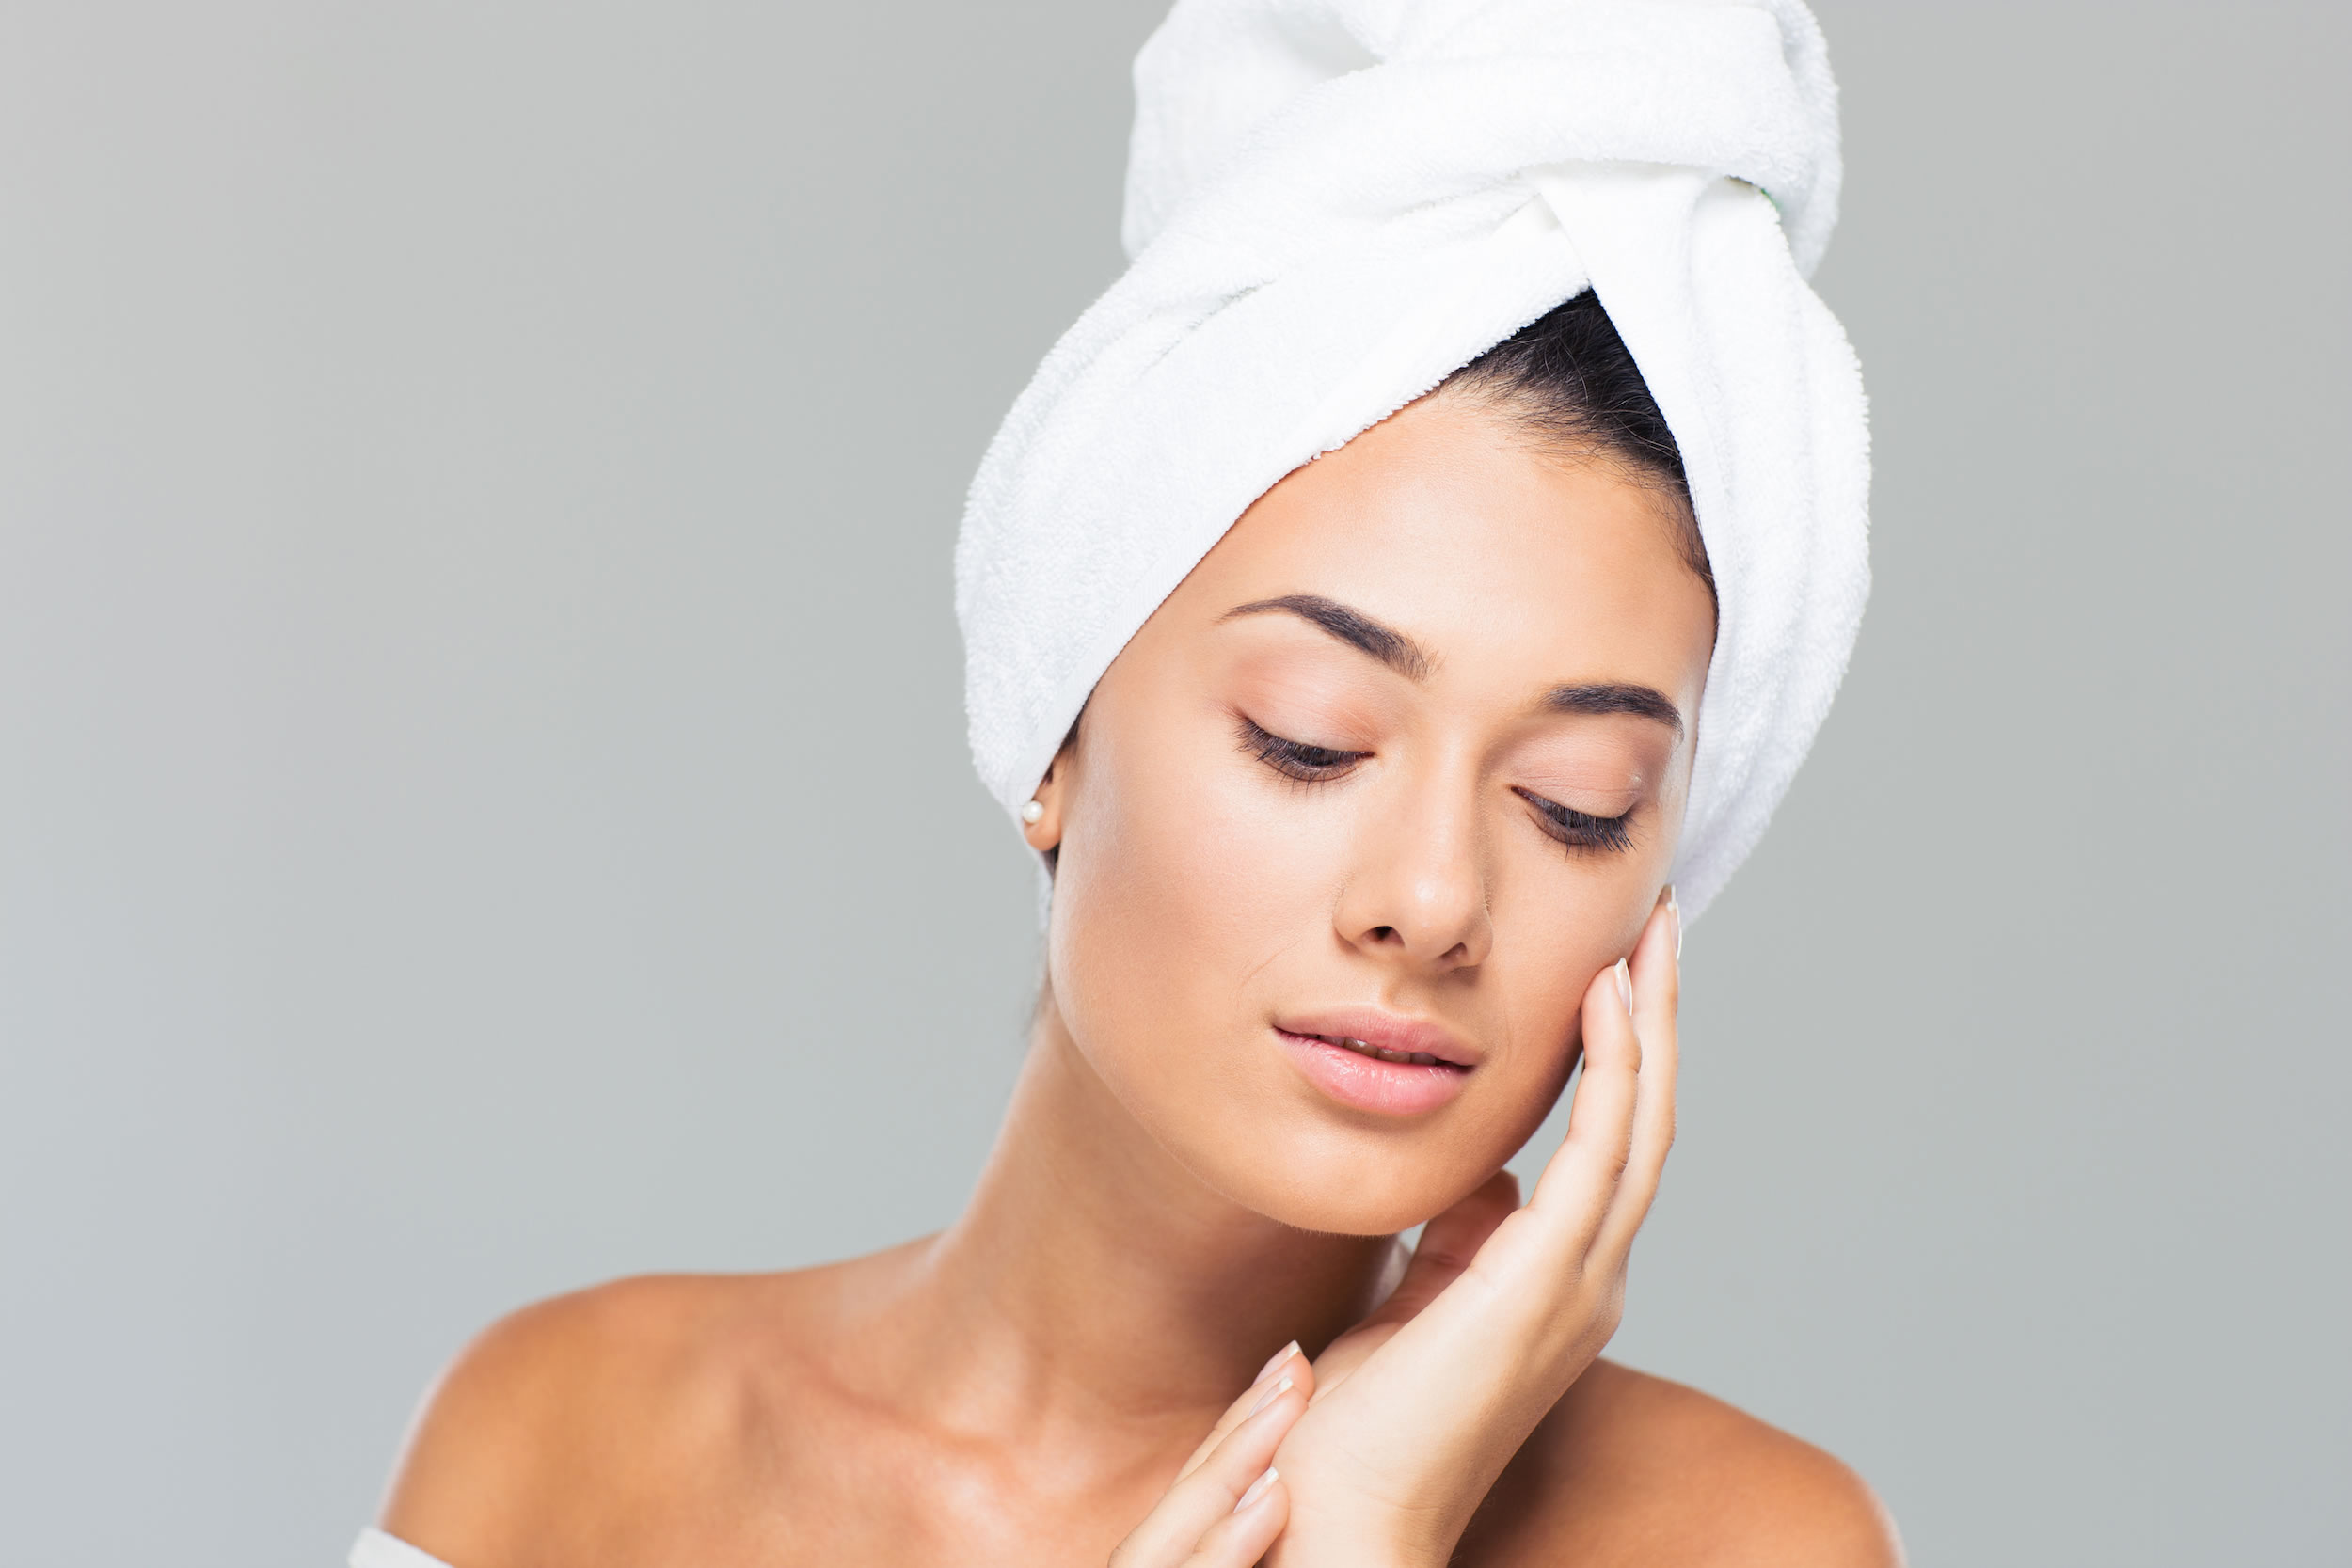 Acne & Skin Conditions Acupuncture in Chicago